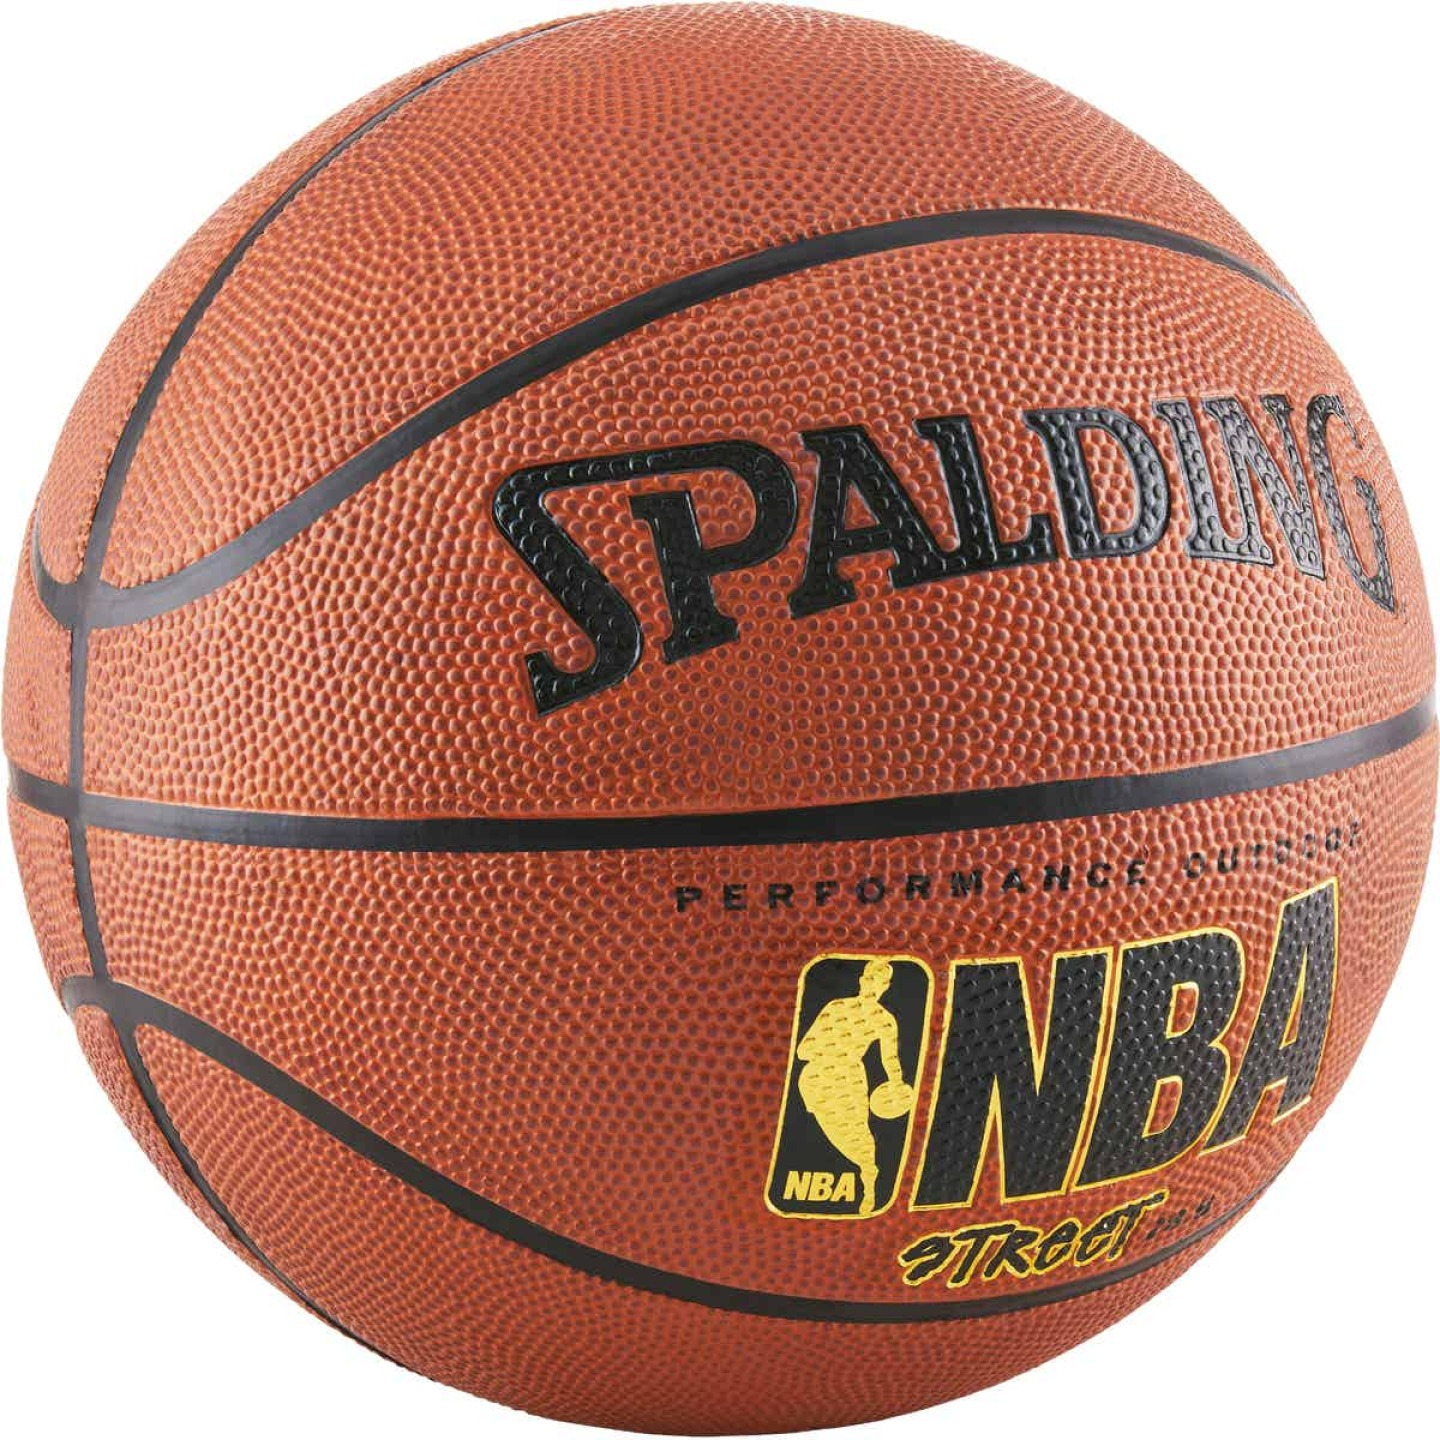 Spalding Outdoor NBA Street Basketball, Unofficial Size Image 2